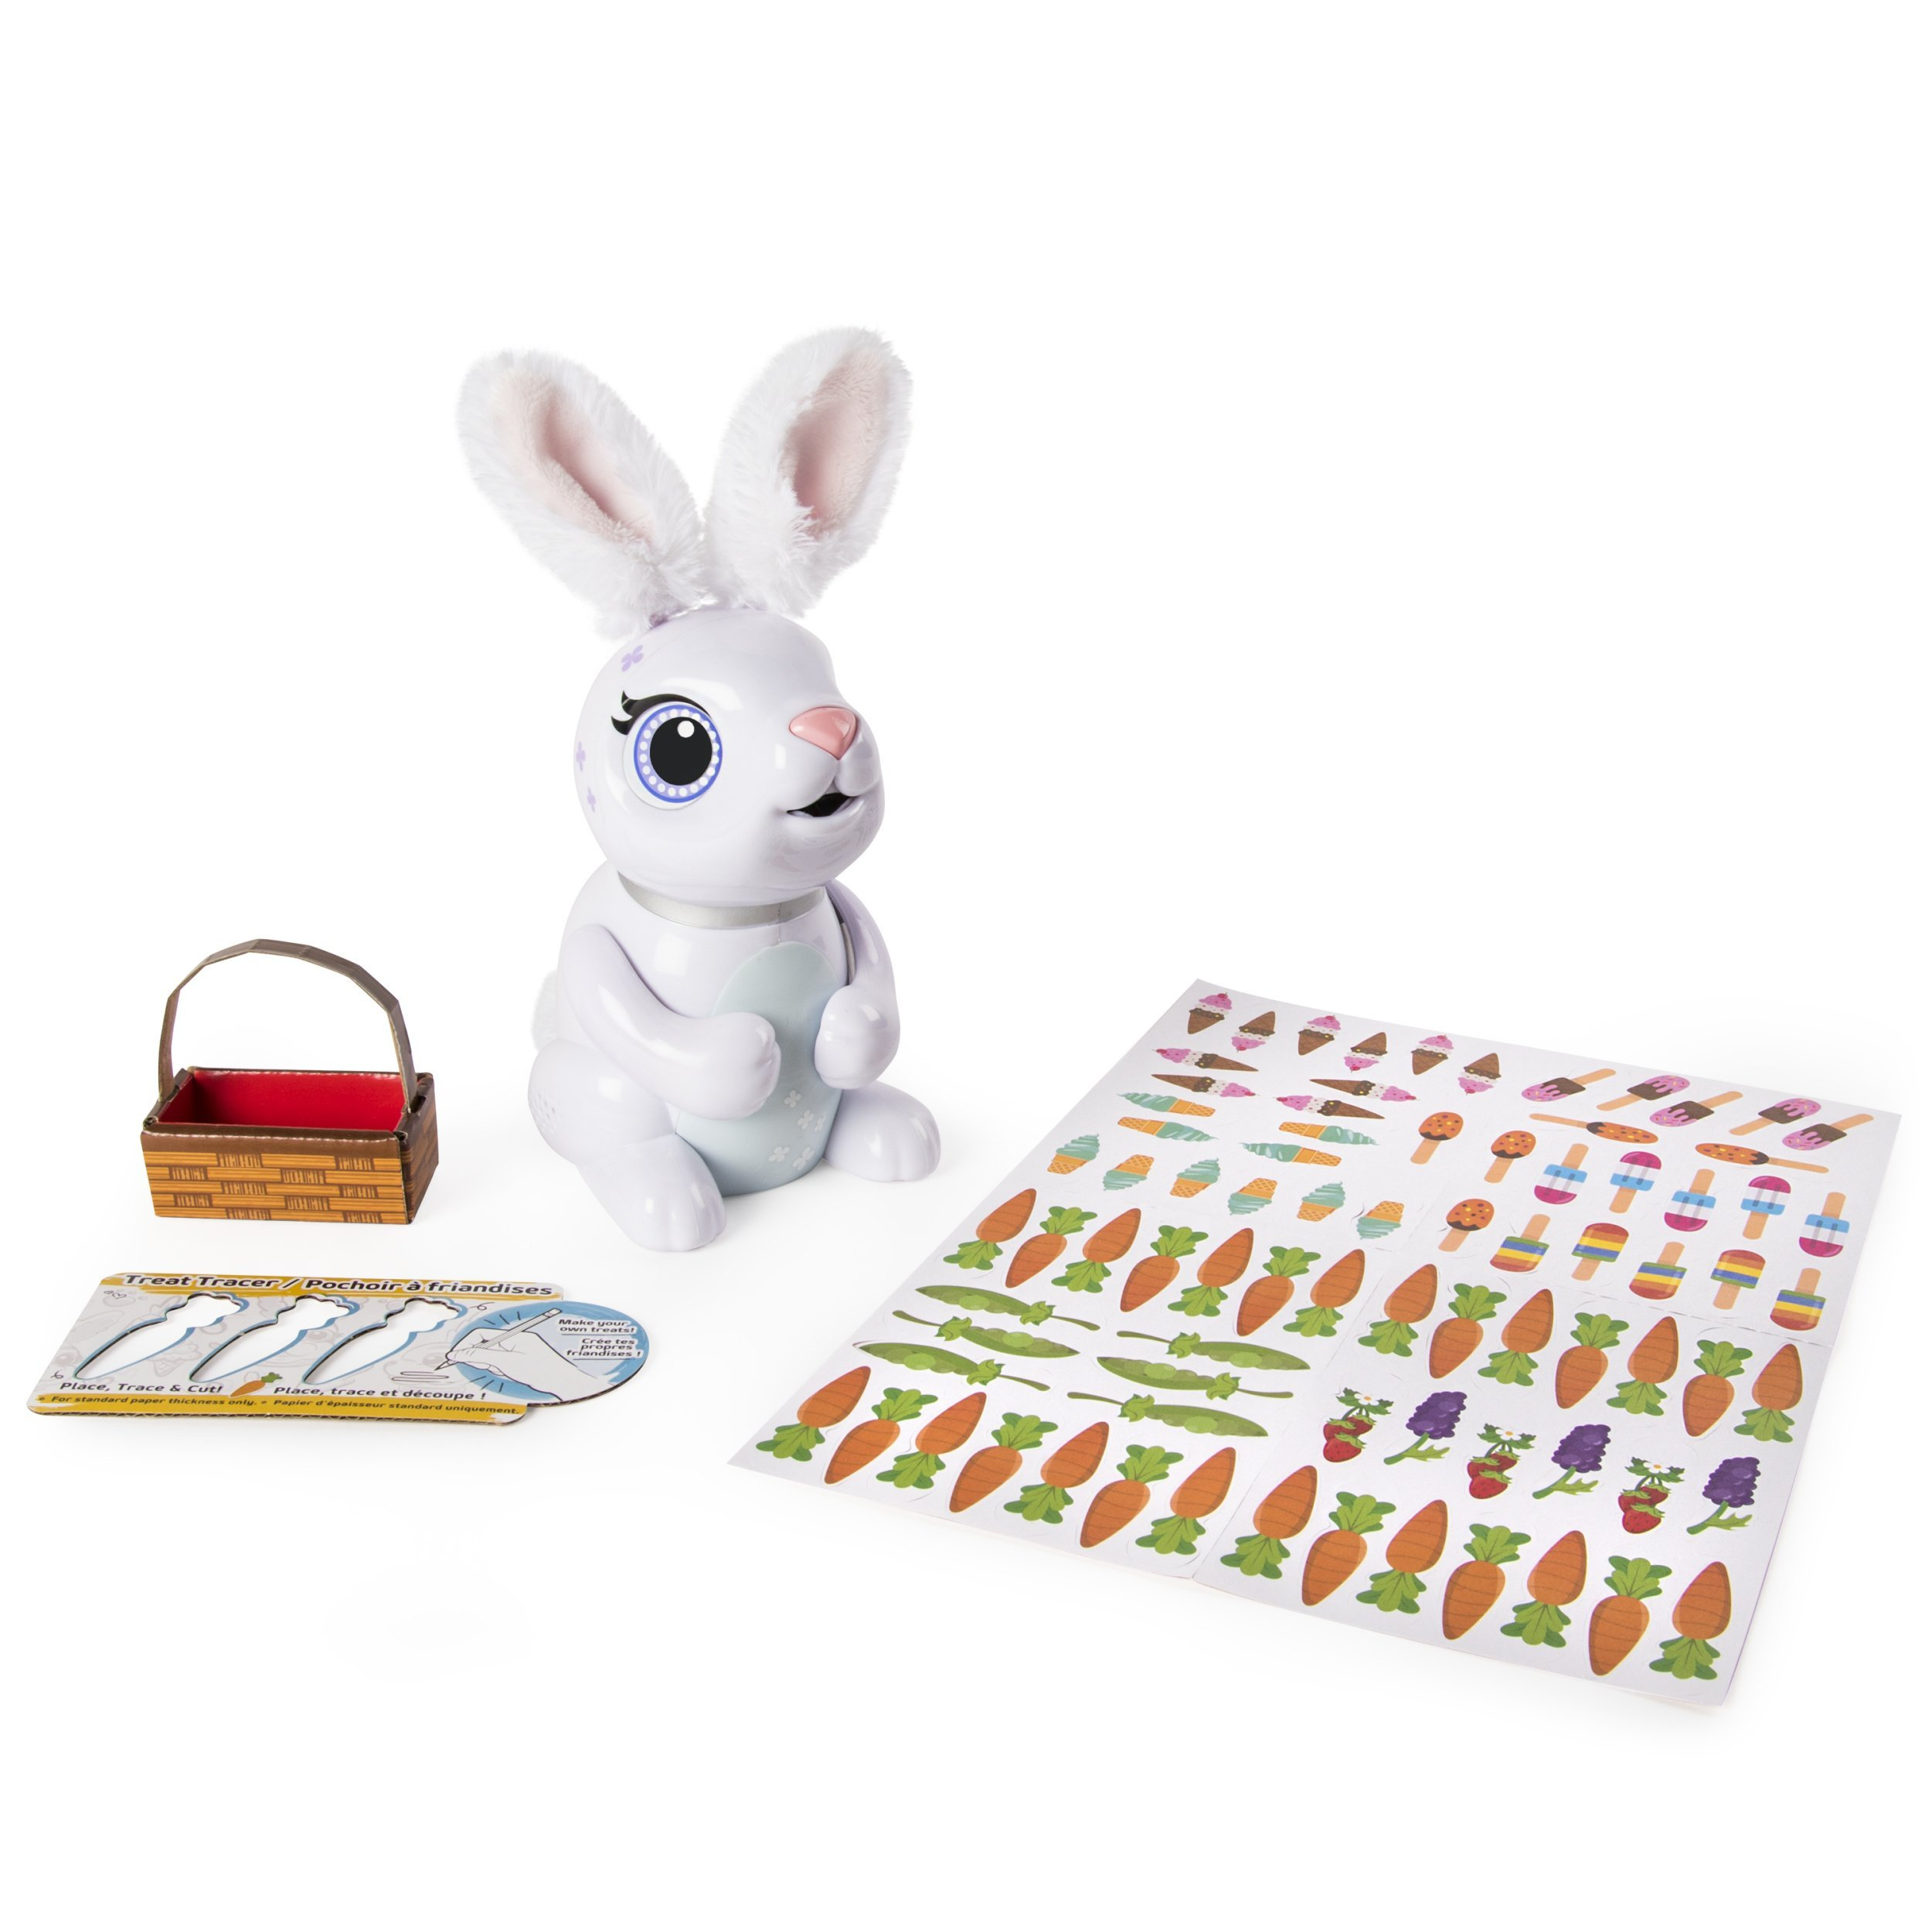 Zoomer Hungry Bunnies Chewy, Interactive Robotic Rabbit That Eats, Ages 5 & Up by Zoomer (Image #9)